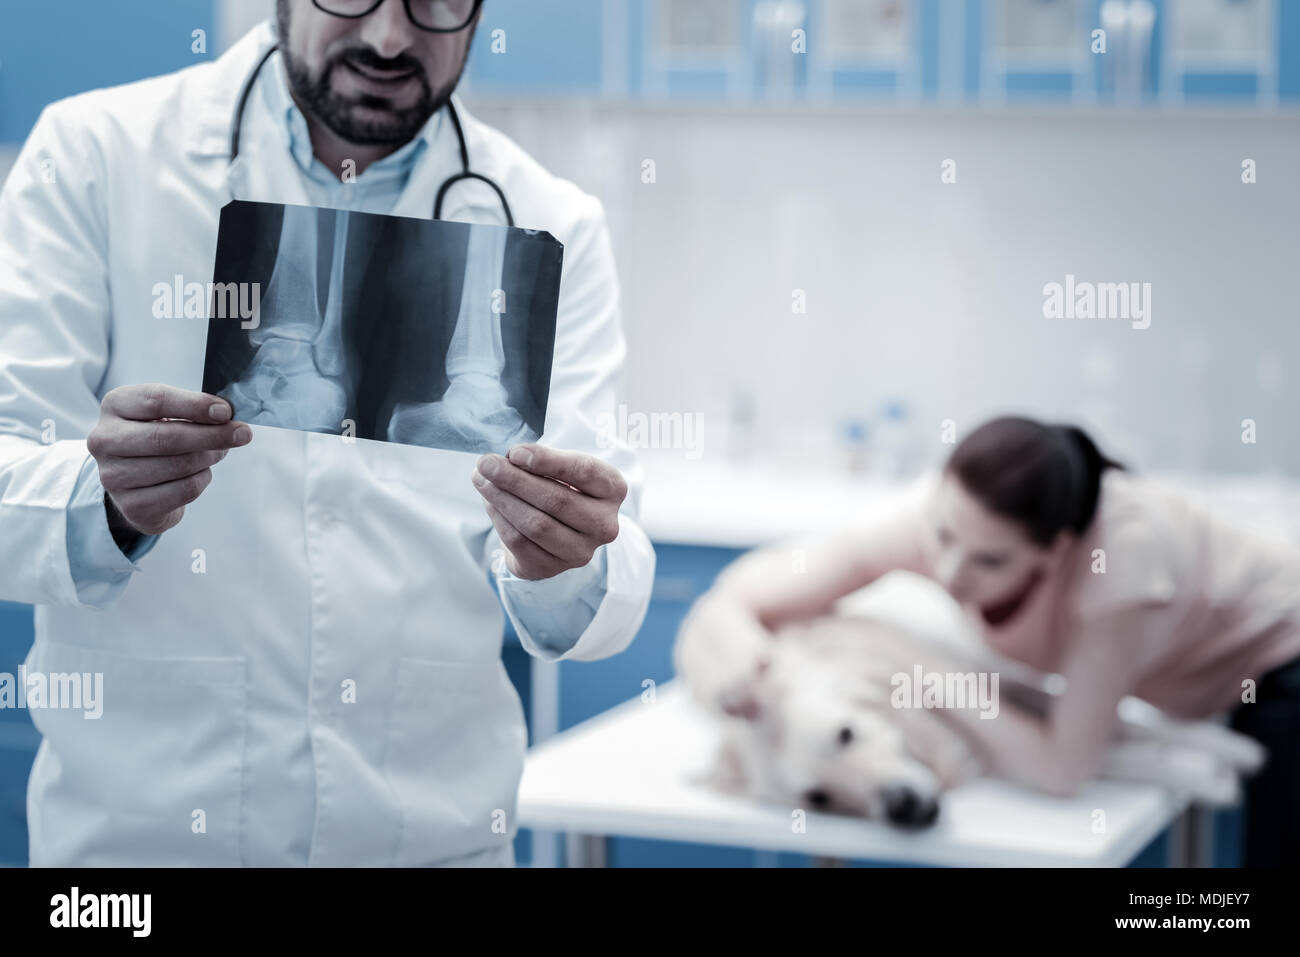 Selective focus of an X ray photo - Stock Image